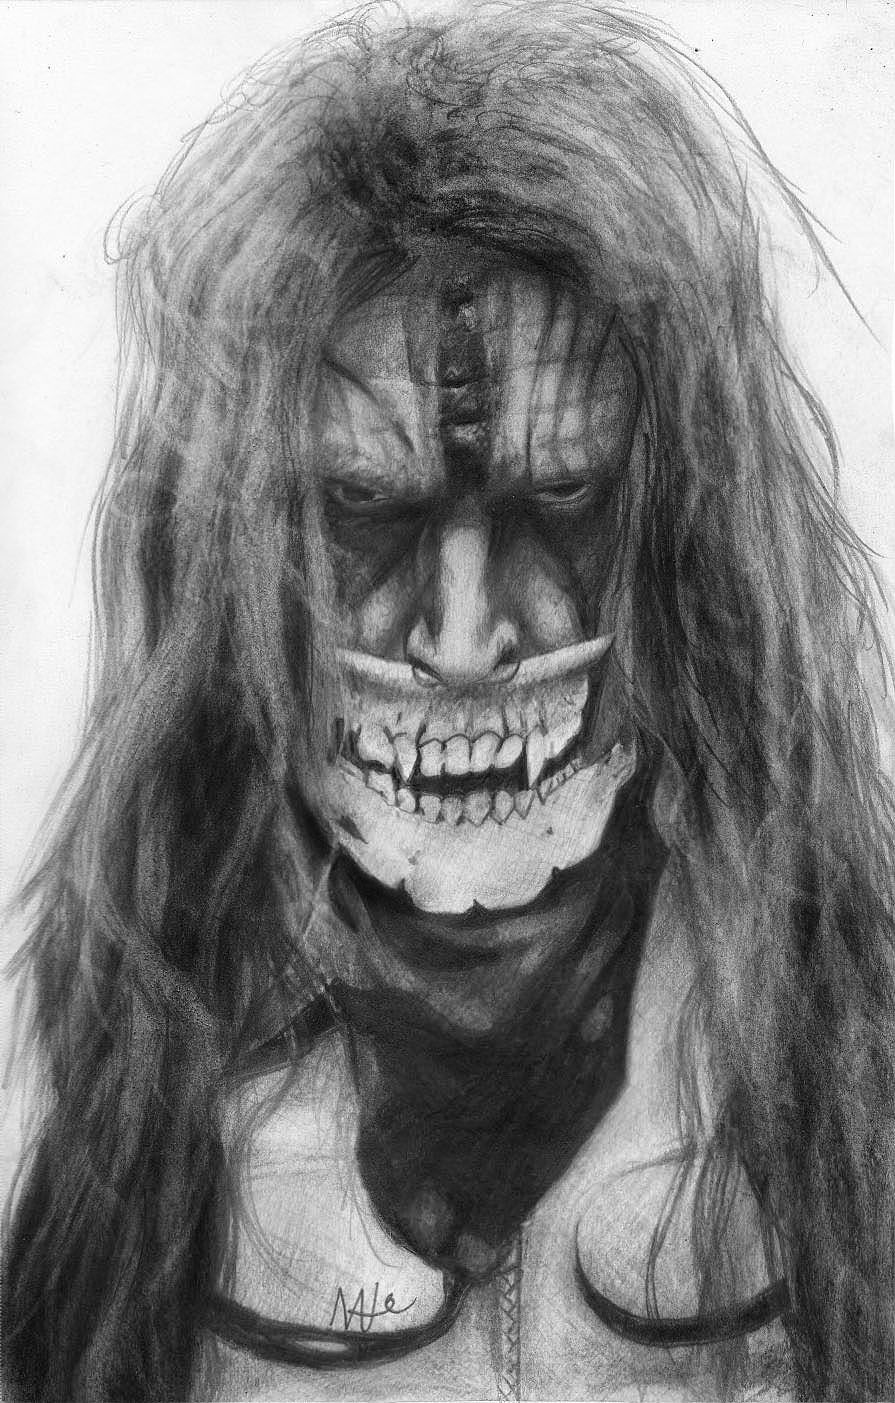 Rob Zombie drawing by Nat Morley